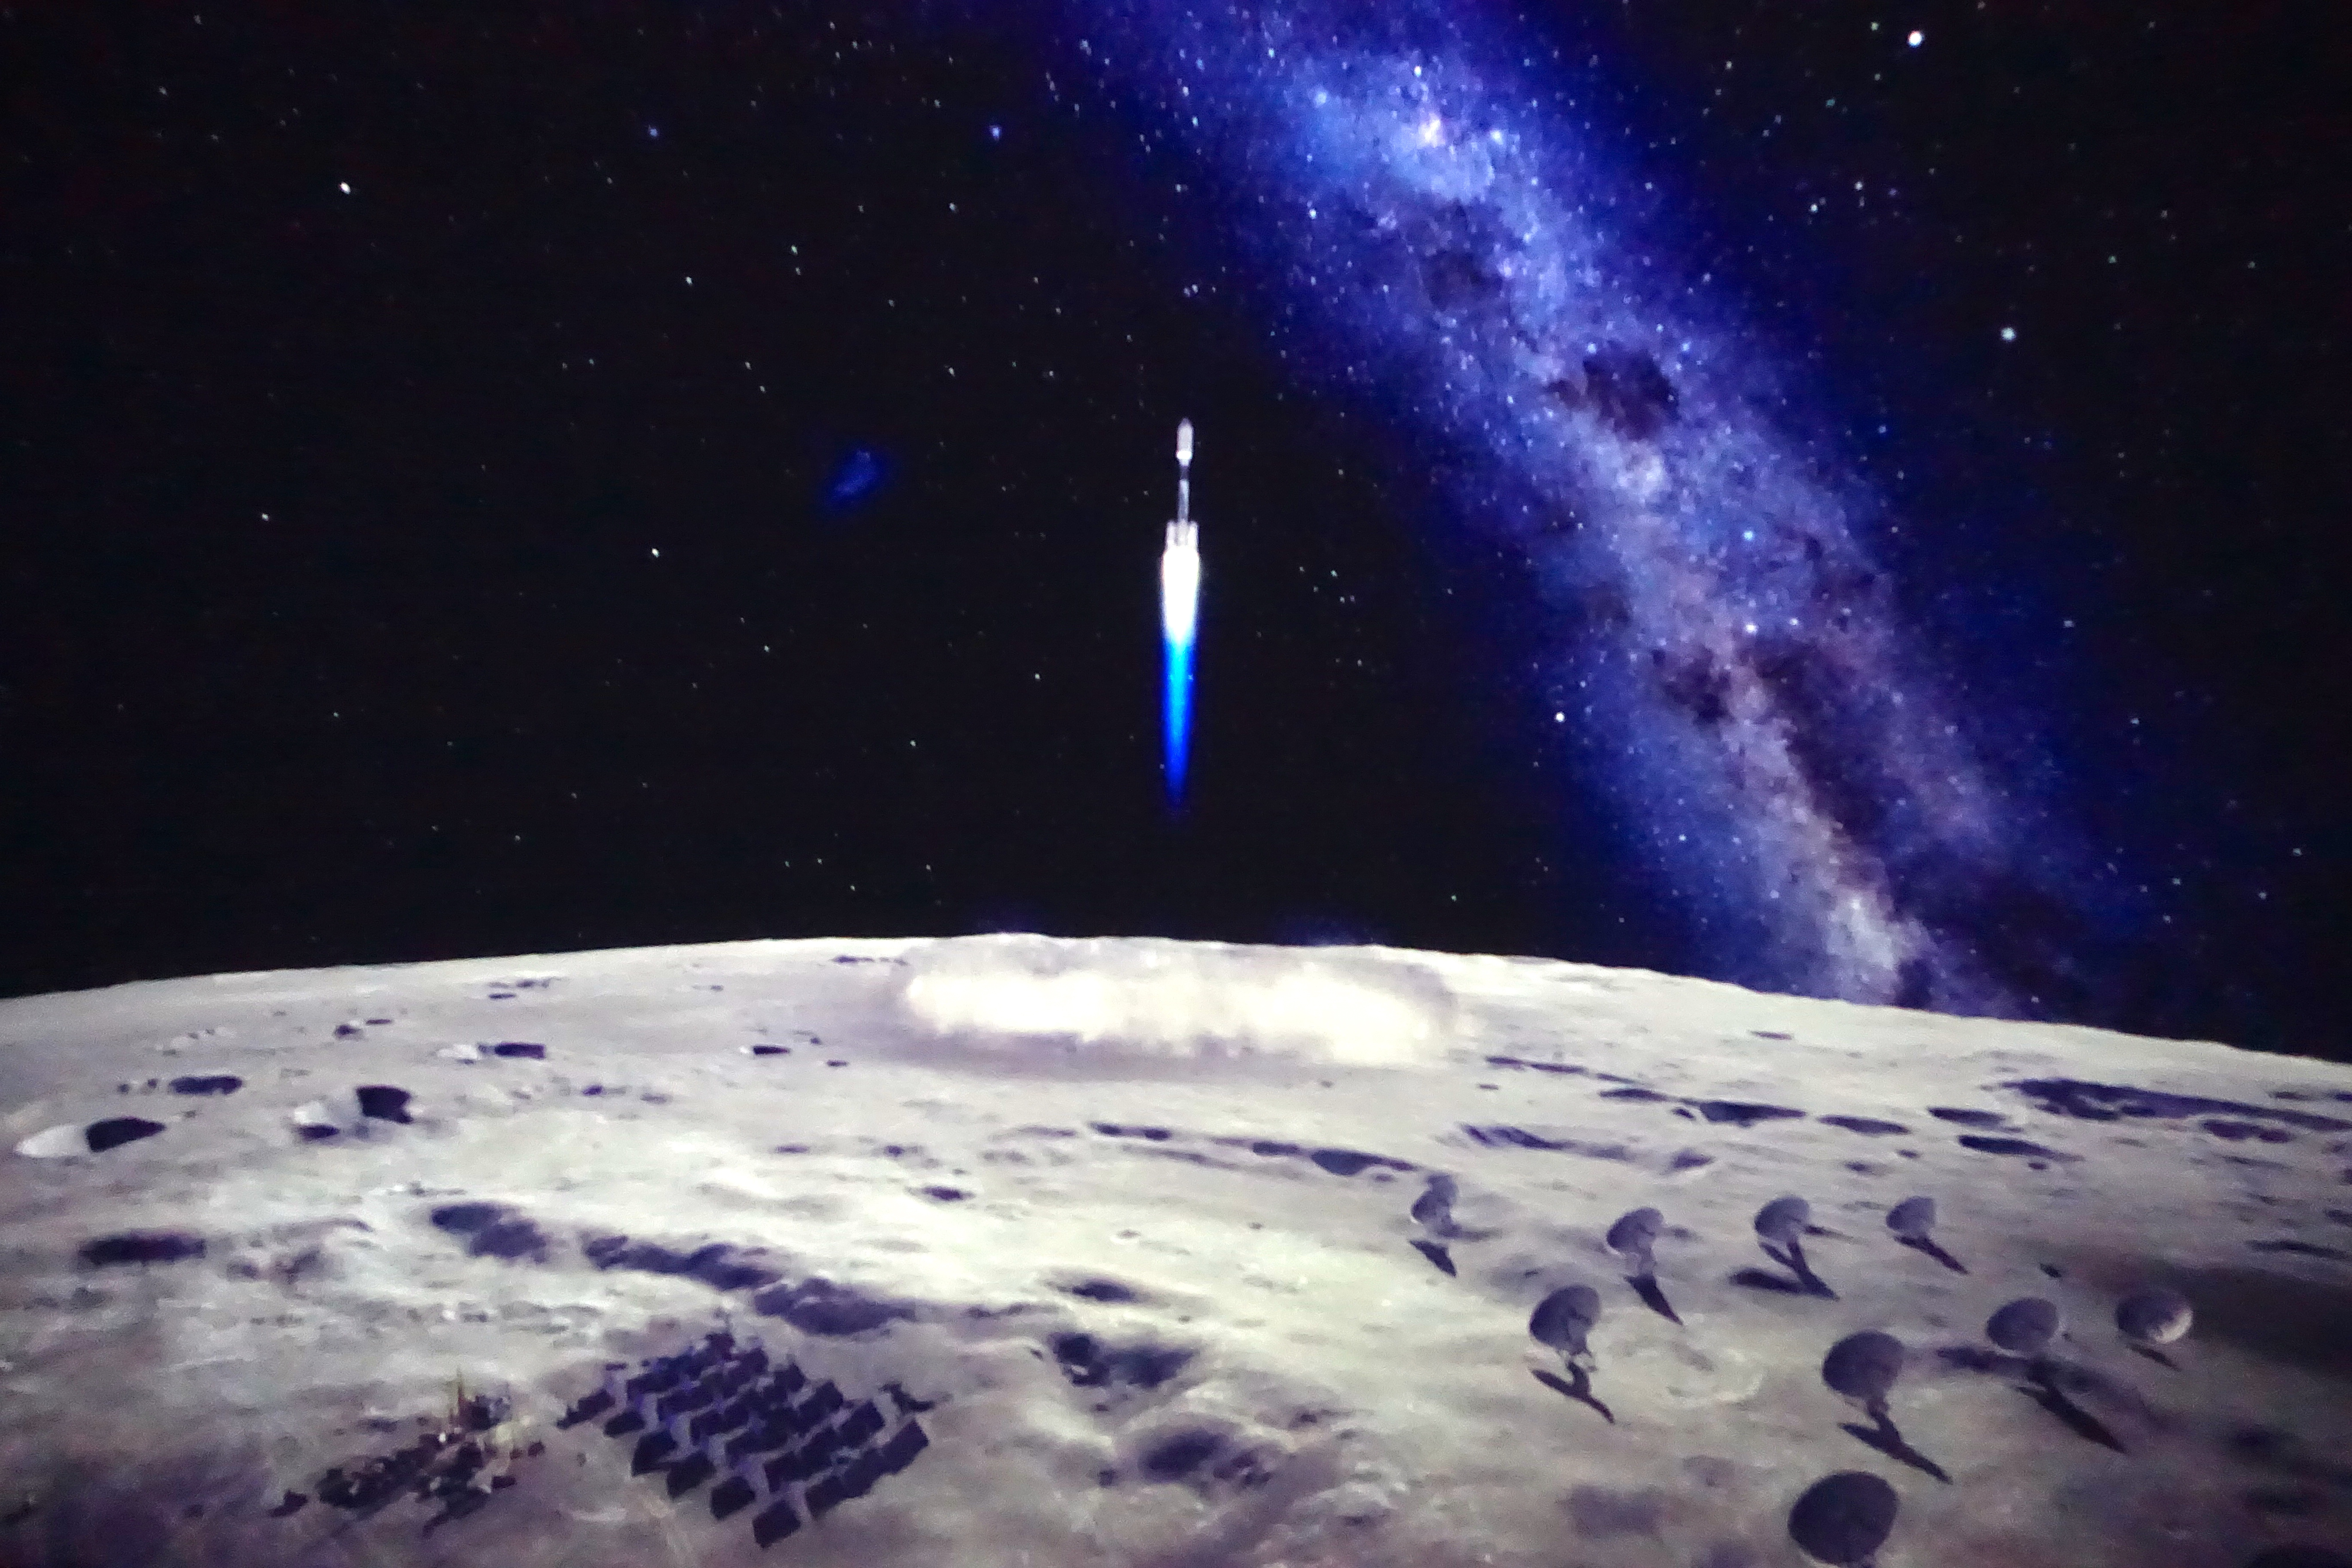 Imagining the future on the moon